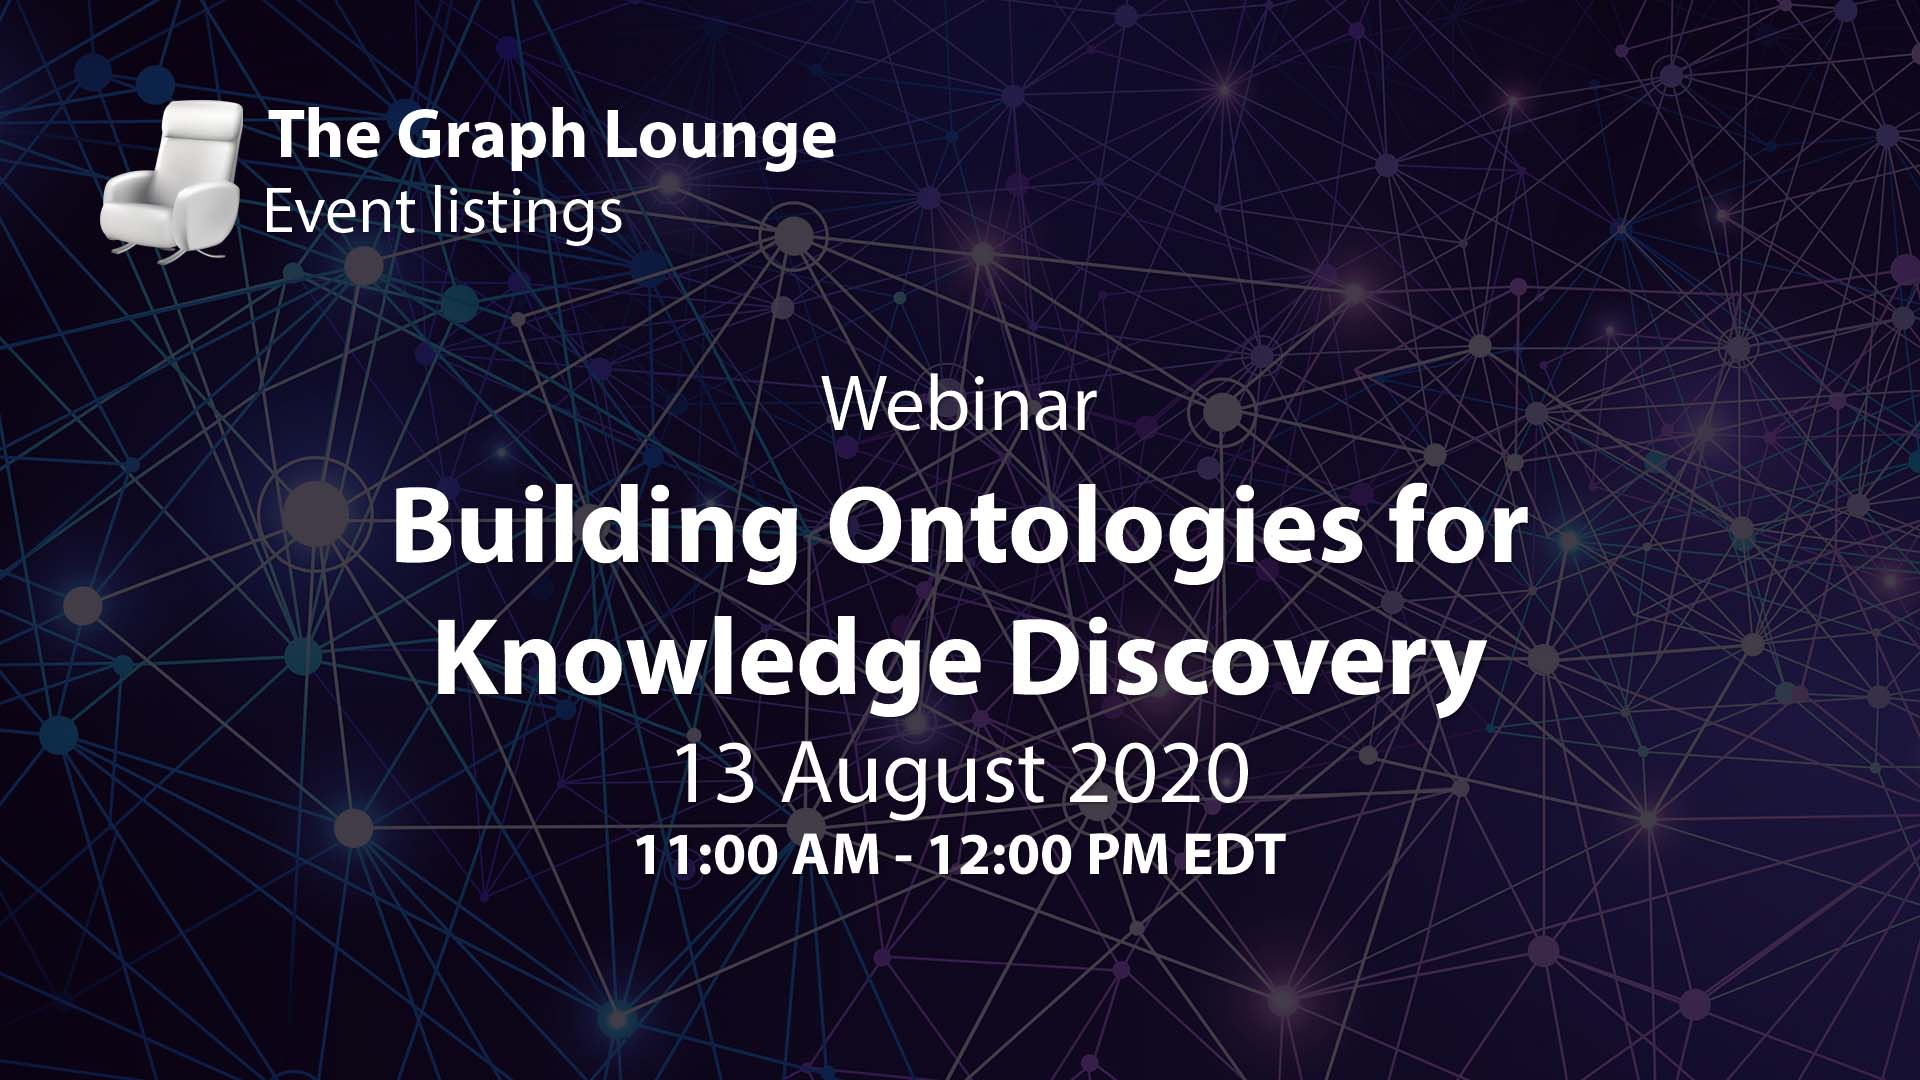 Building Ontologies for Knowledge Discovery